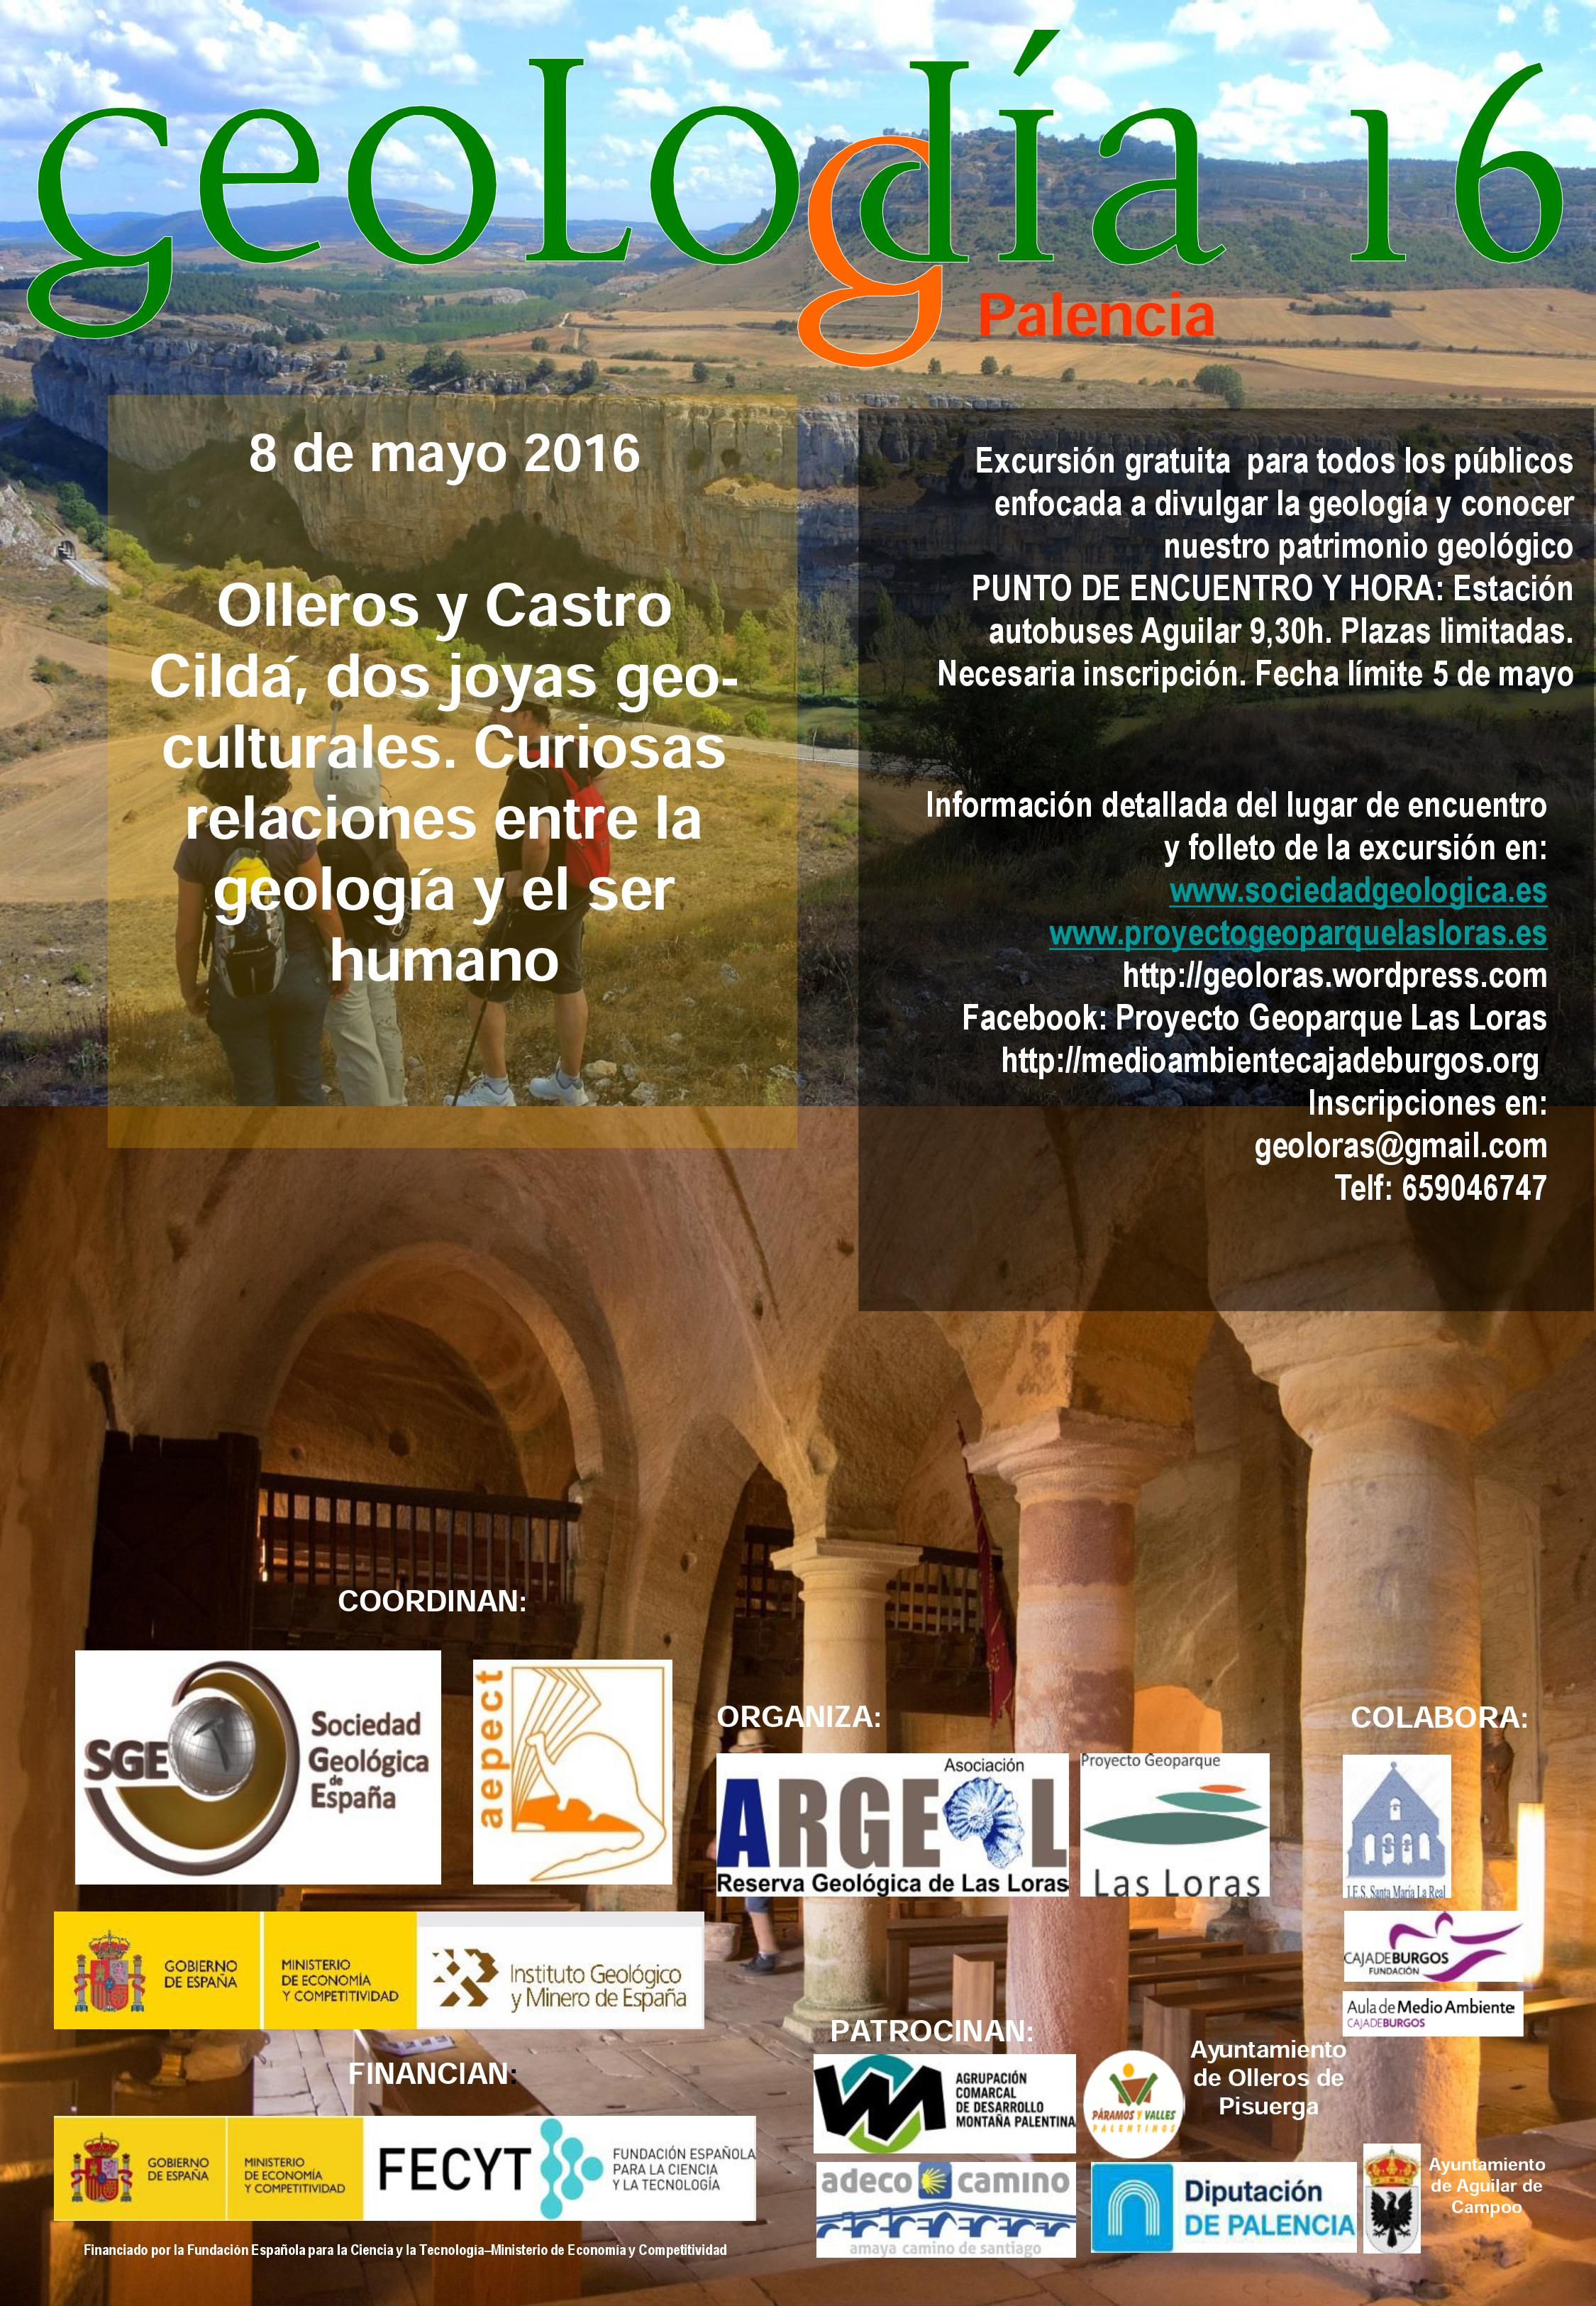 poster-geolodia-16-palencia